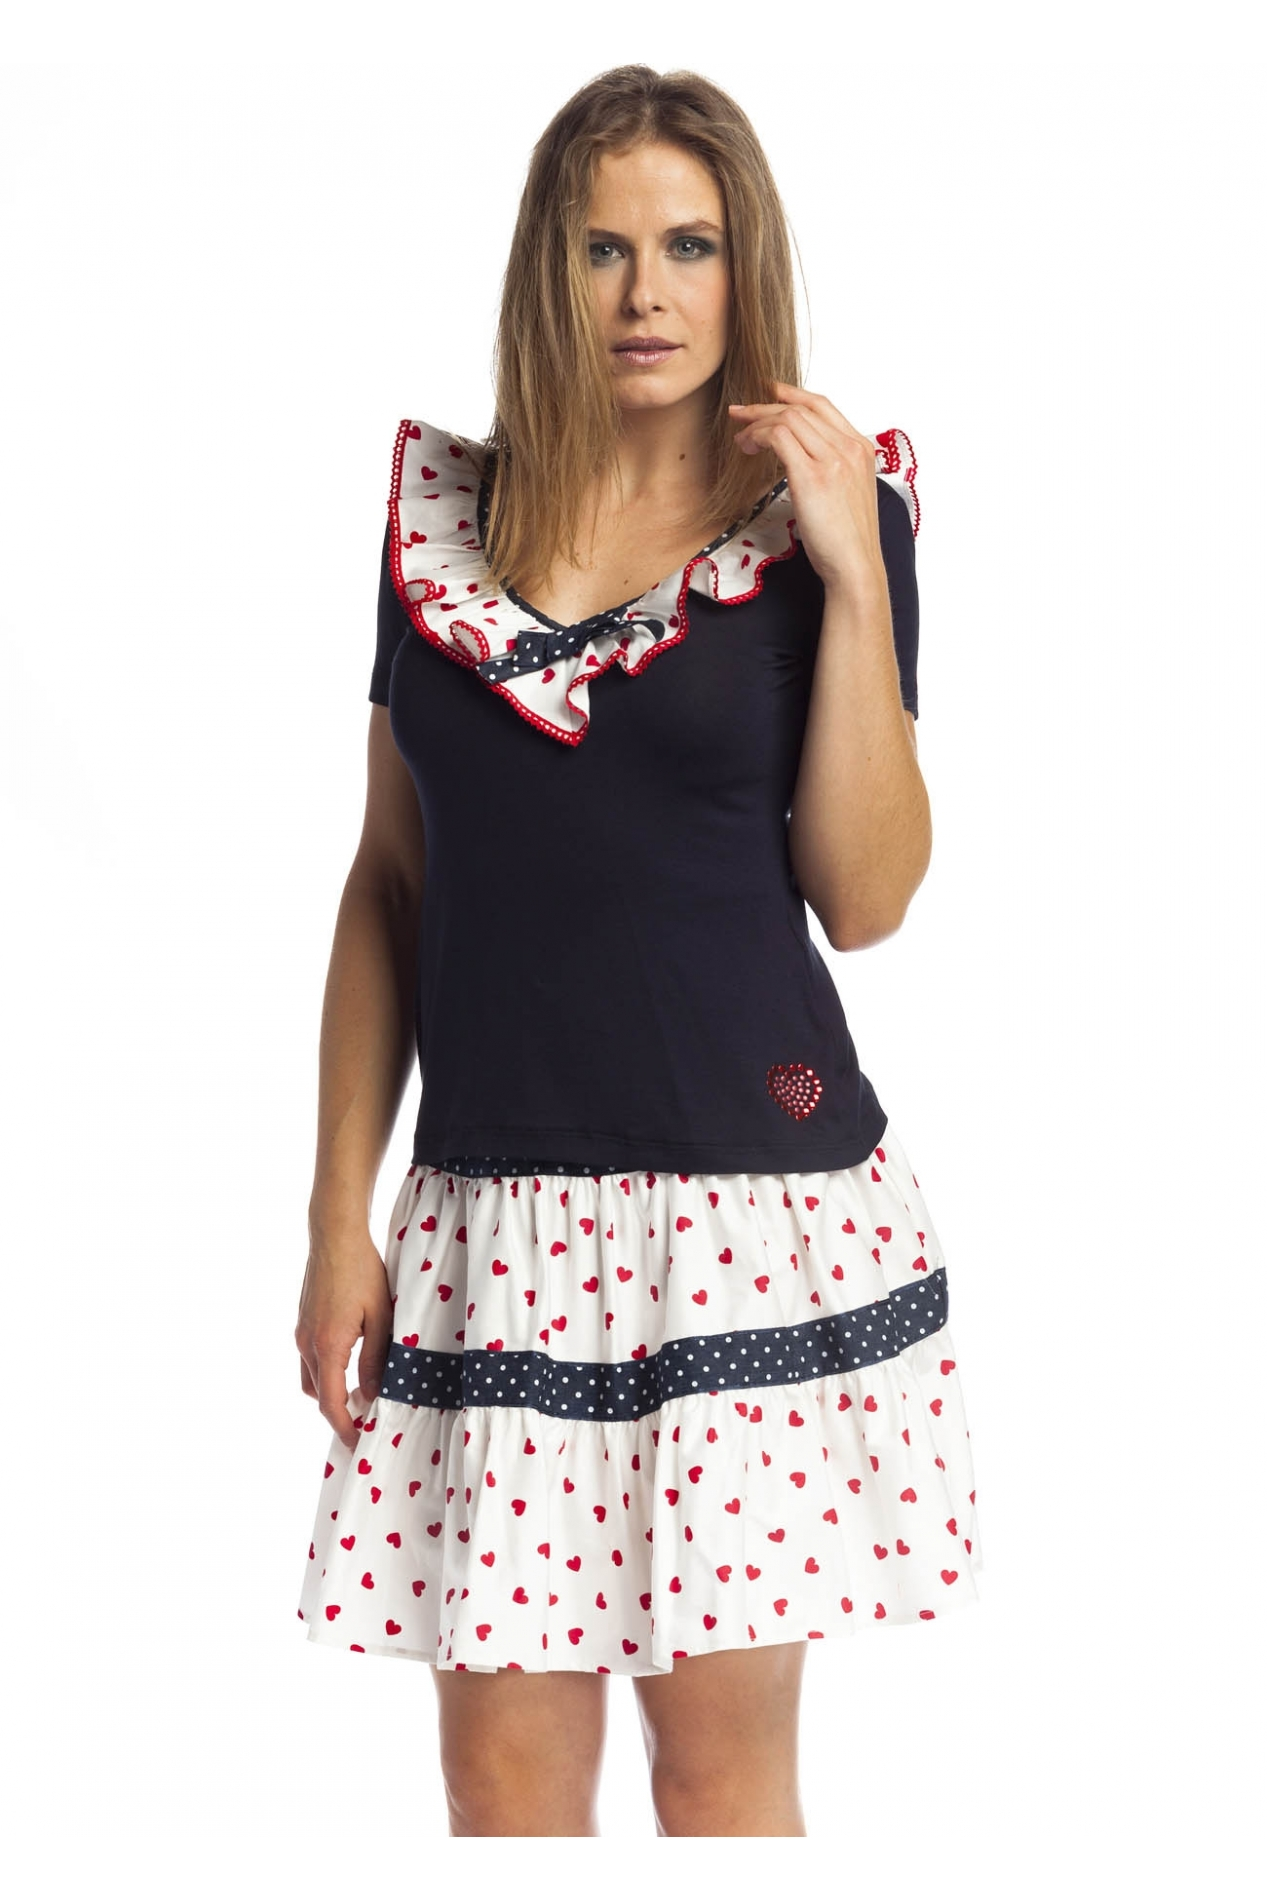 Rosalita McGee: Palyful Sailor Tiara Cotton Top